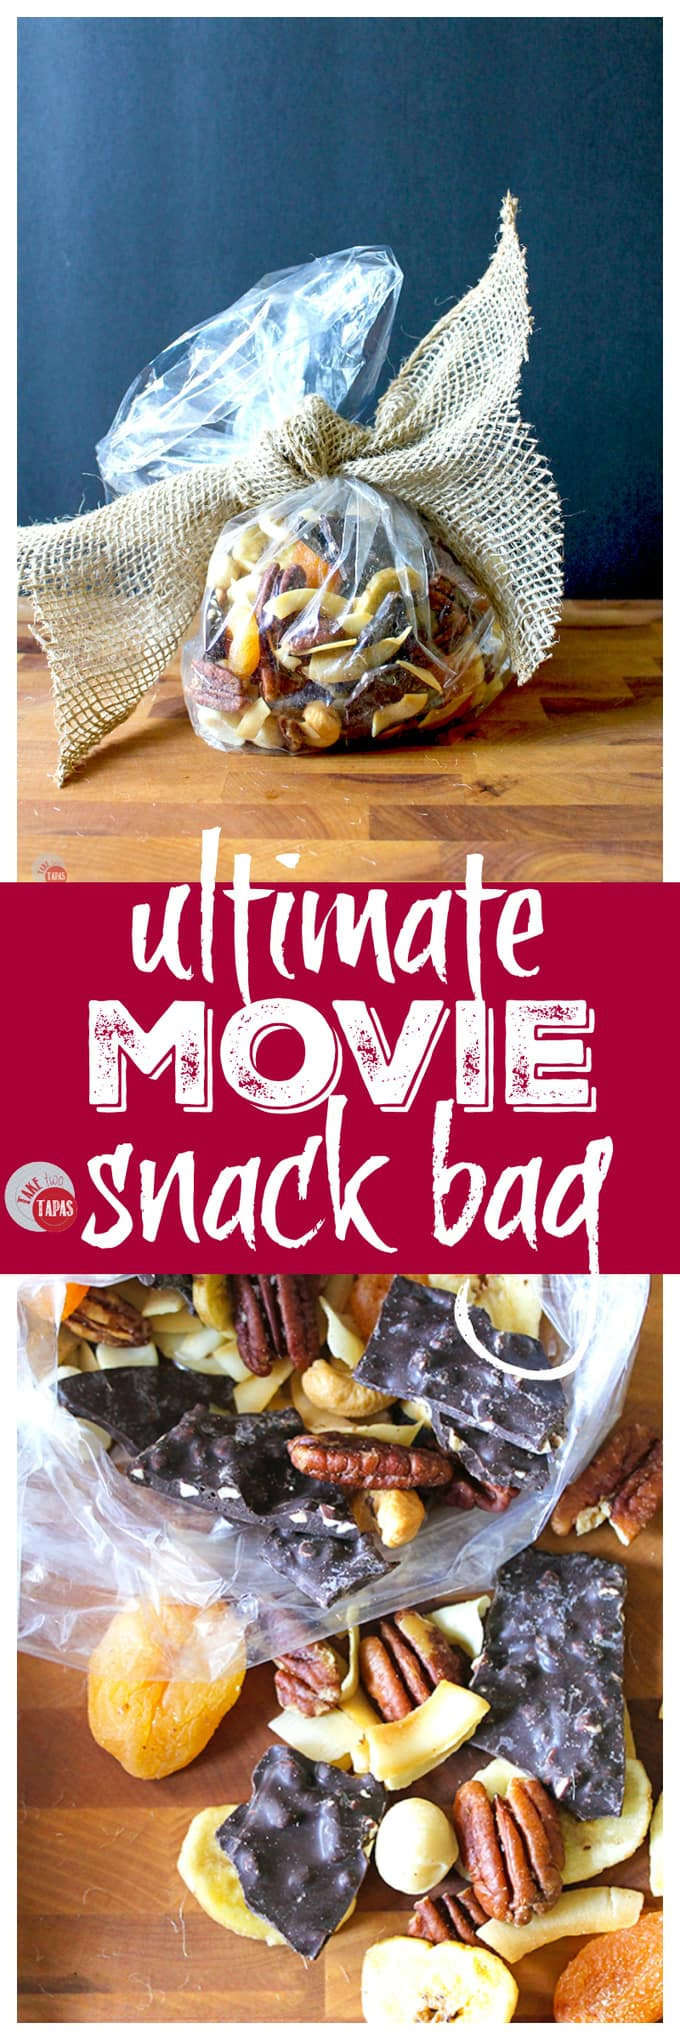 Movie Snack Bag For Ultimate Movie Watching | Take Two Tapas | #moviesnacks #ConcessionStands #Snacks #Movies #Summer